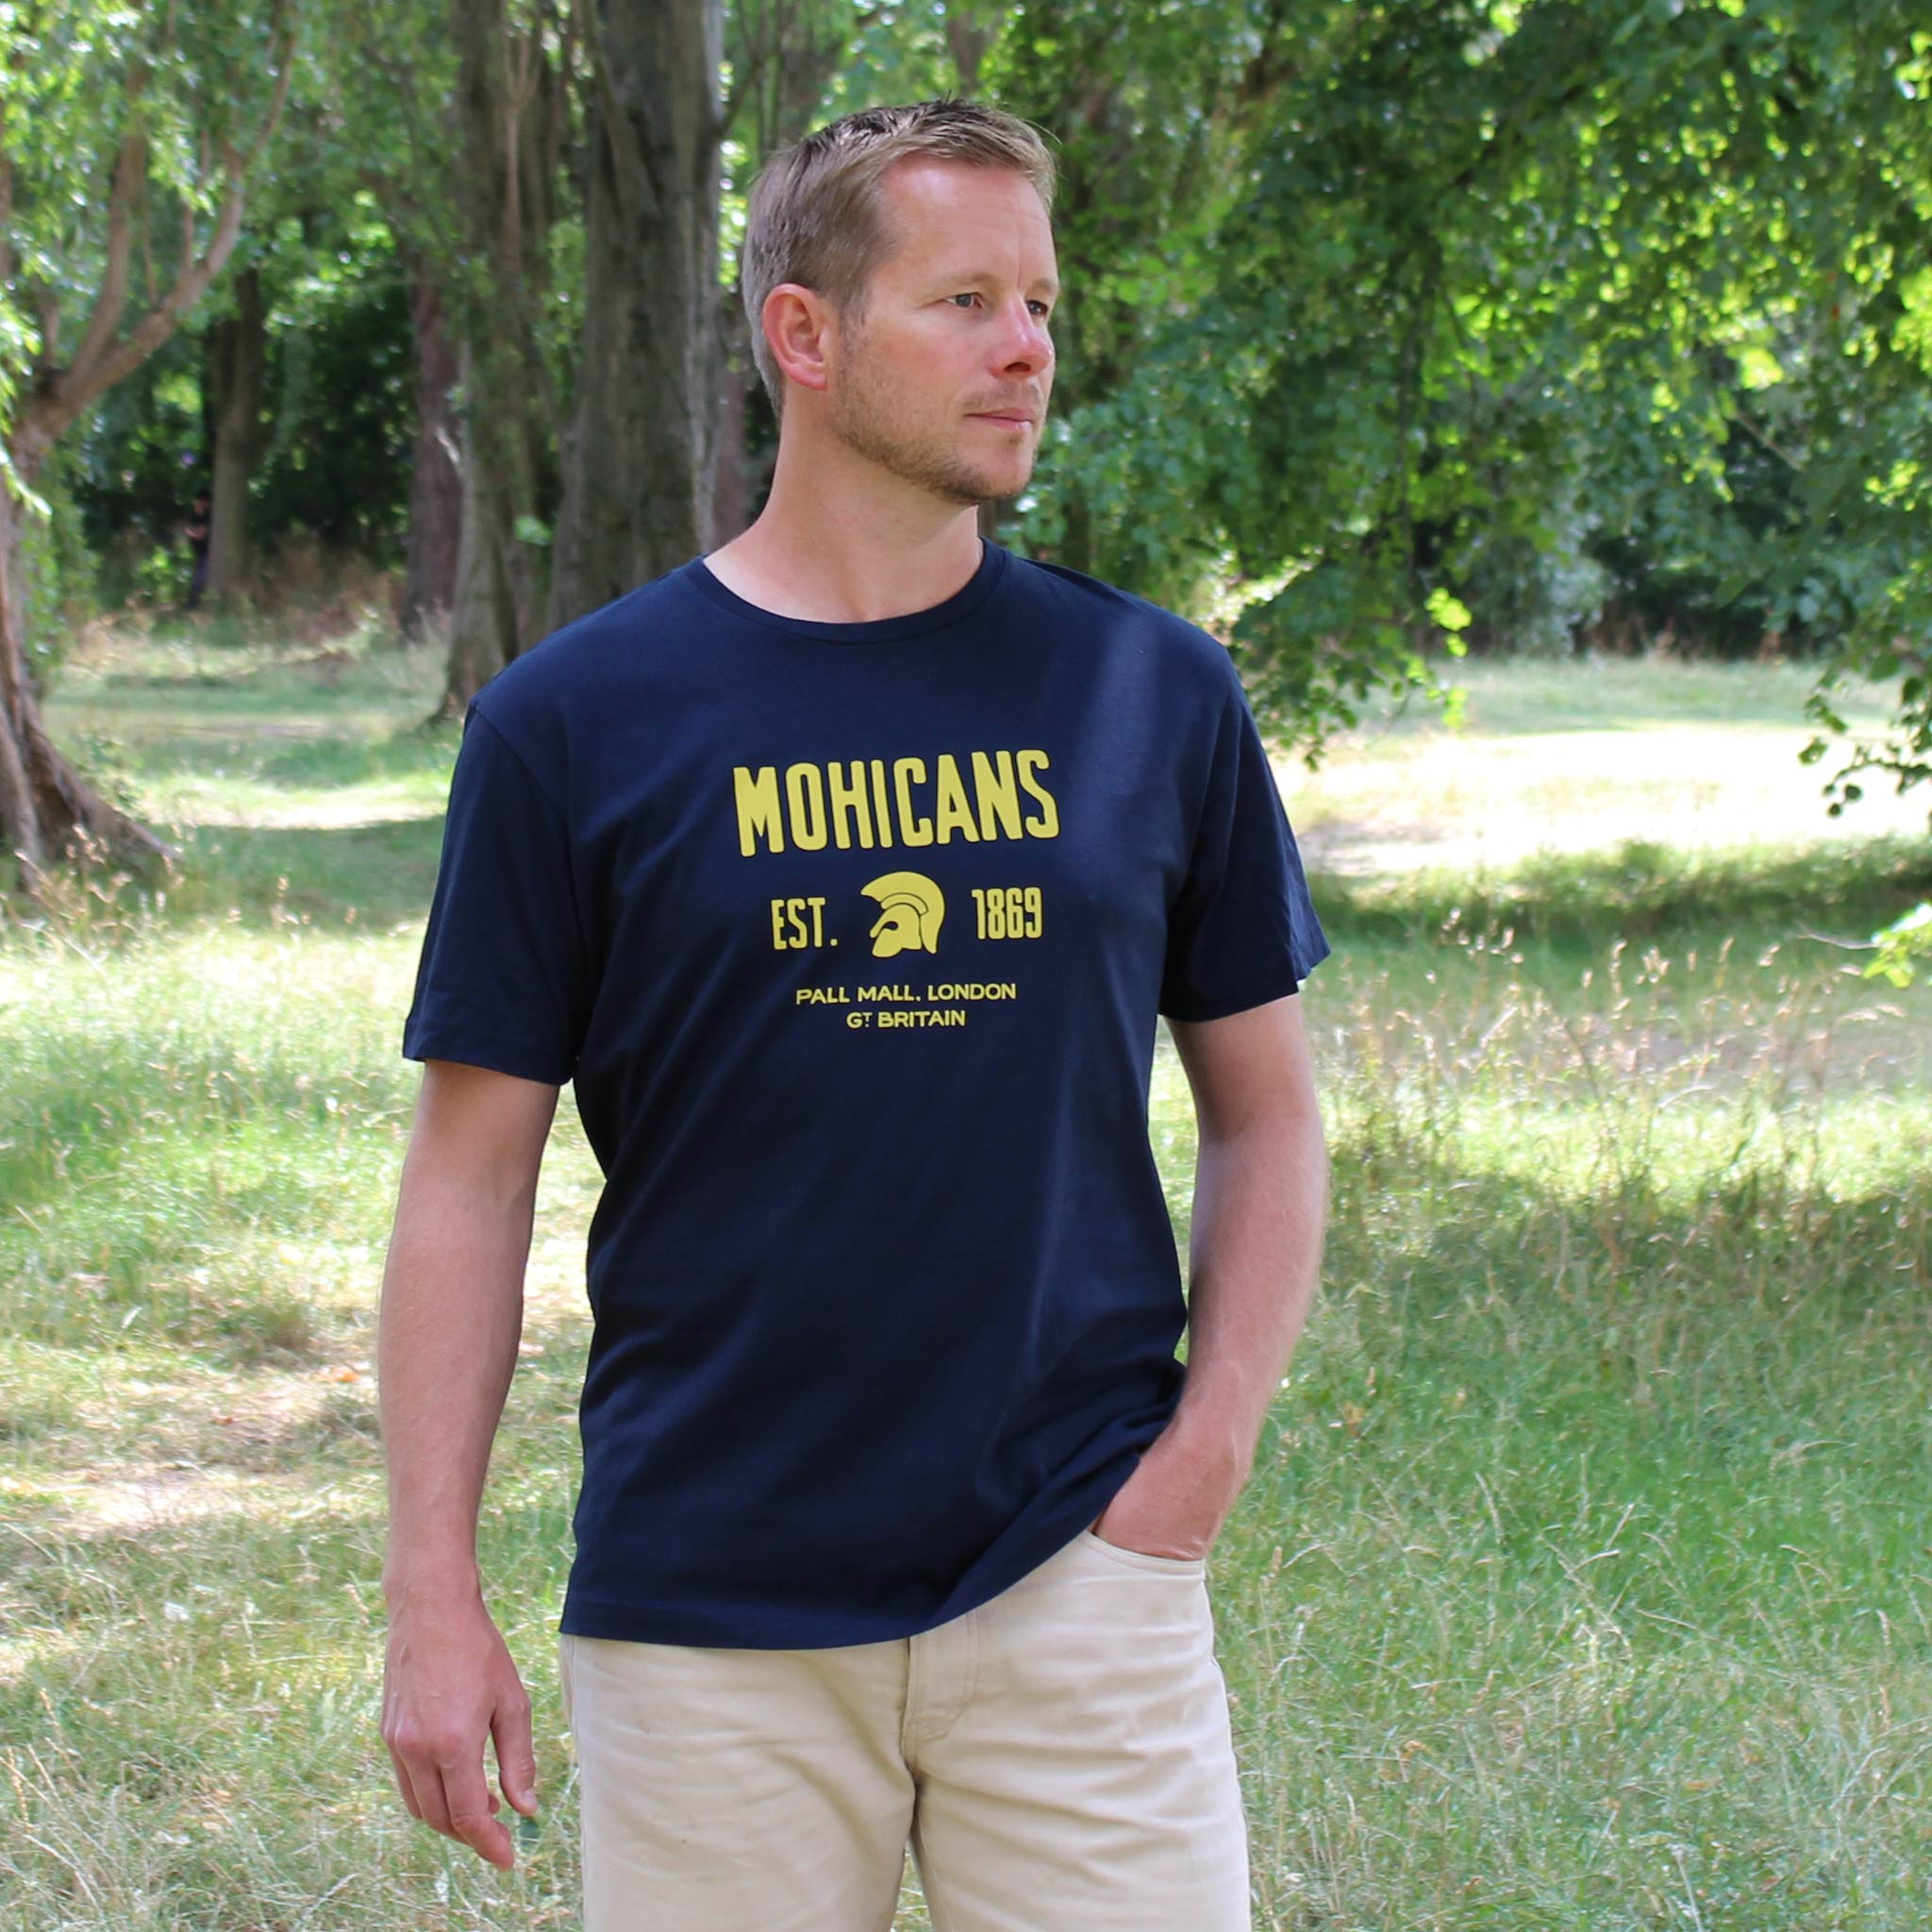 Mohicans Navy T-shirt model